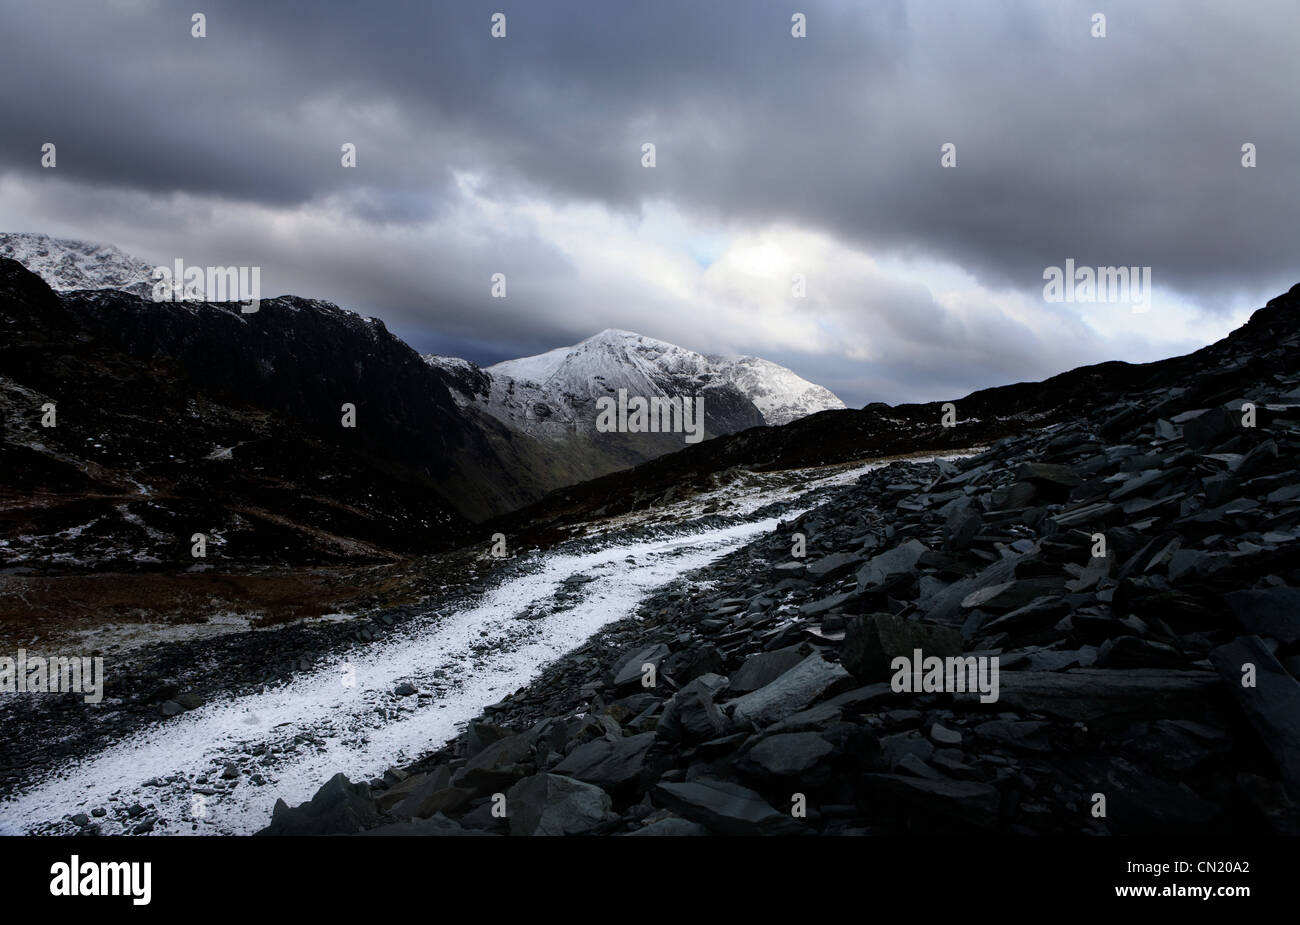 Snow and mountain path, Lake District, Cumbria, England, UK - Stock Image